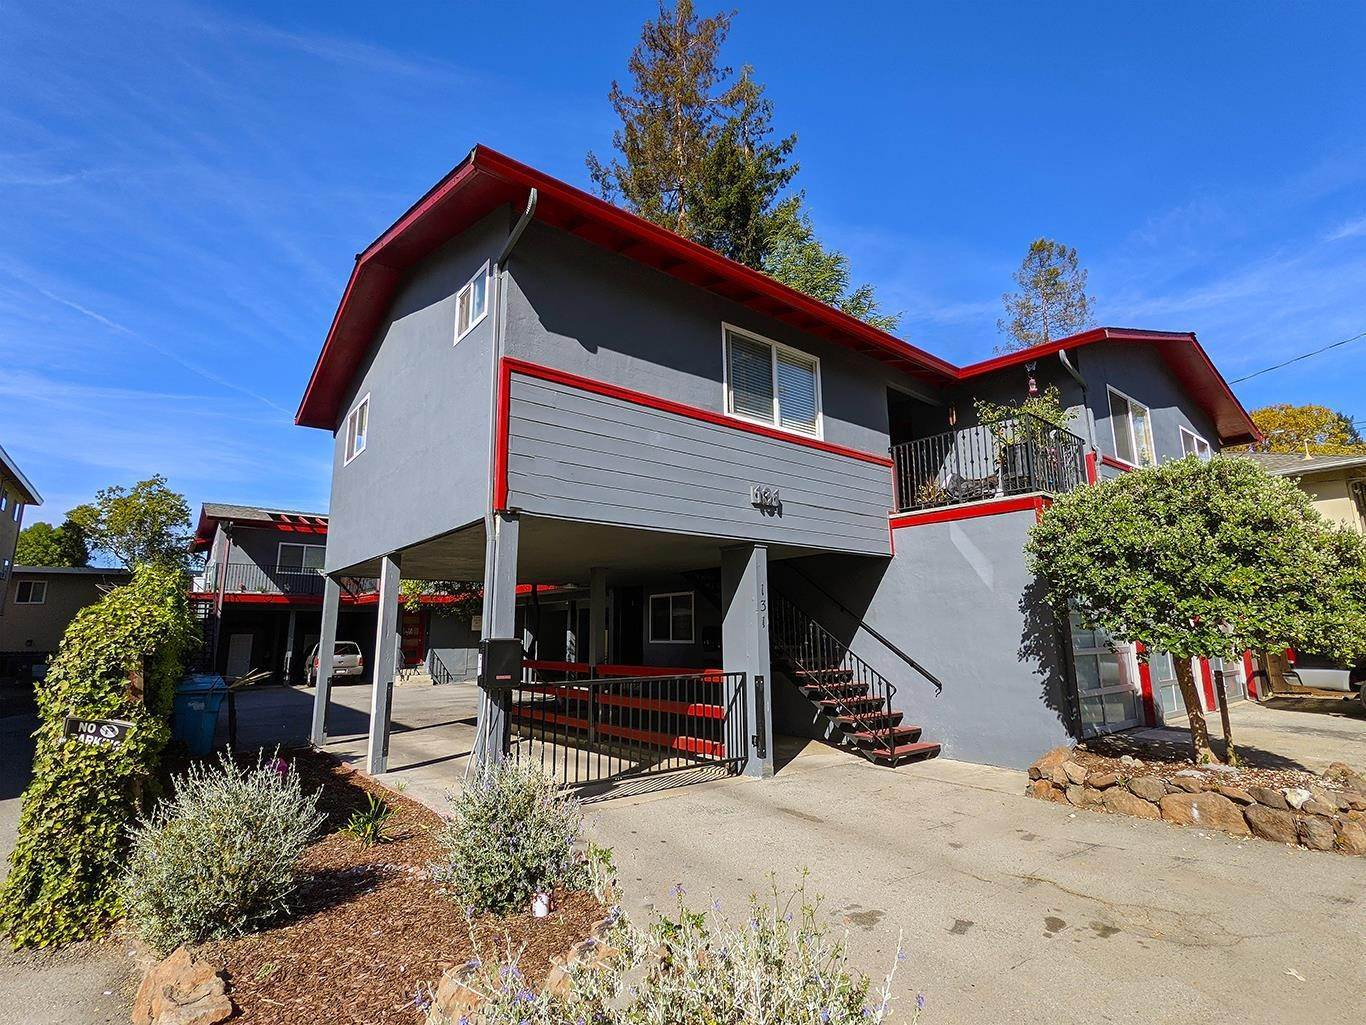 Multi-Family Homes for Sale at 131 Cerrito Avenue Redwood City, California 94061 United States